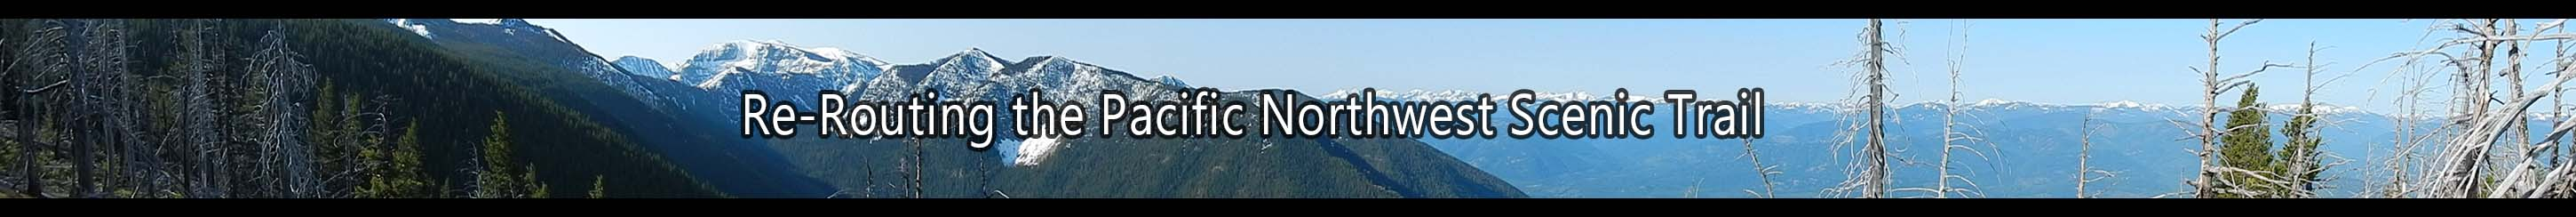 Re-Routing the Pacific Northwest Trail